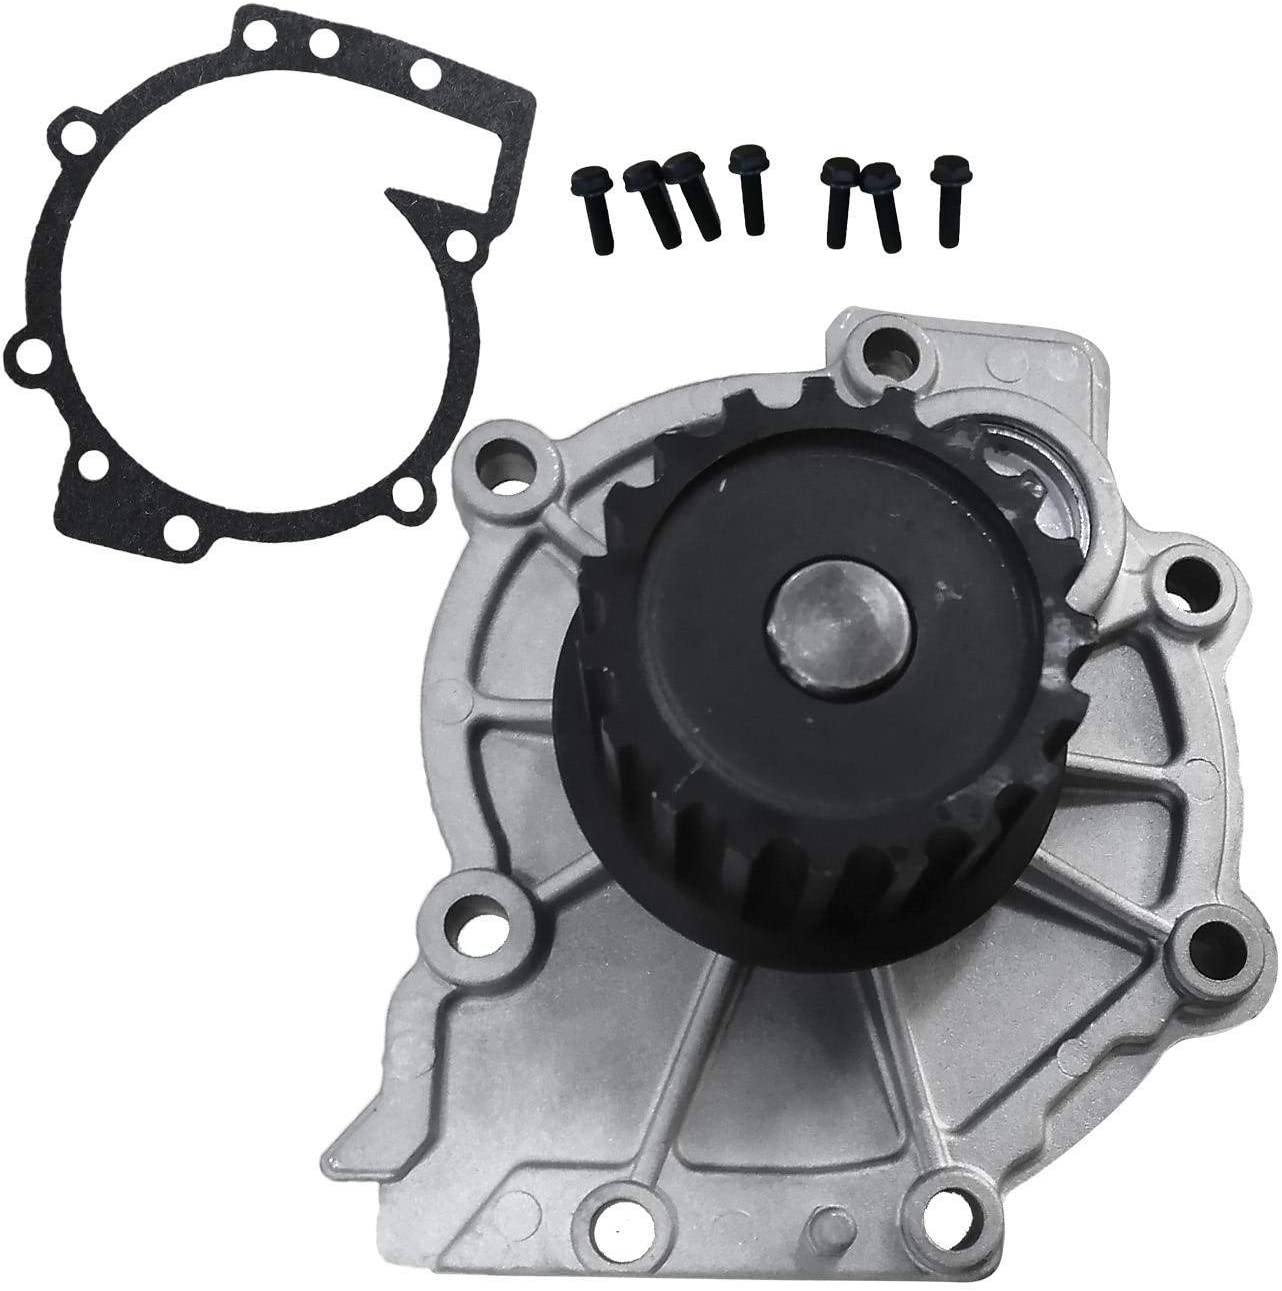 Bapmic 274216 Engine Water Pump with Gasket for Volvo S80 XC90 2.9L